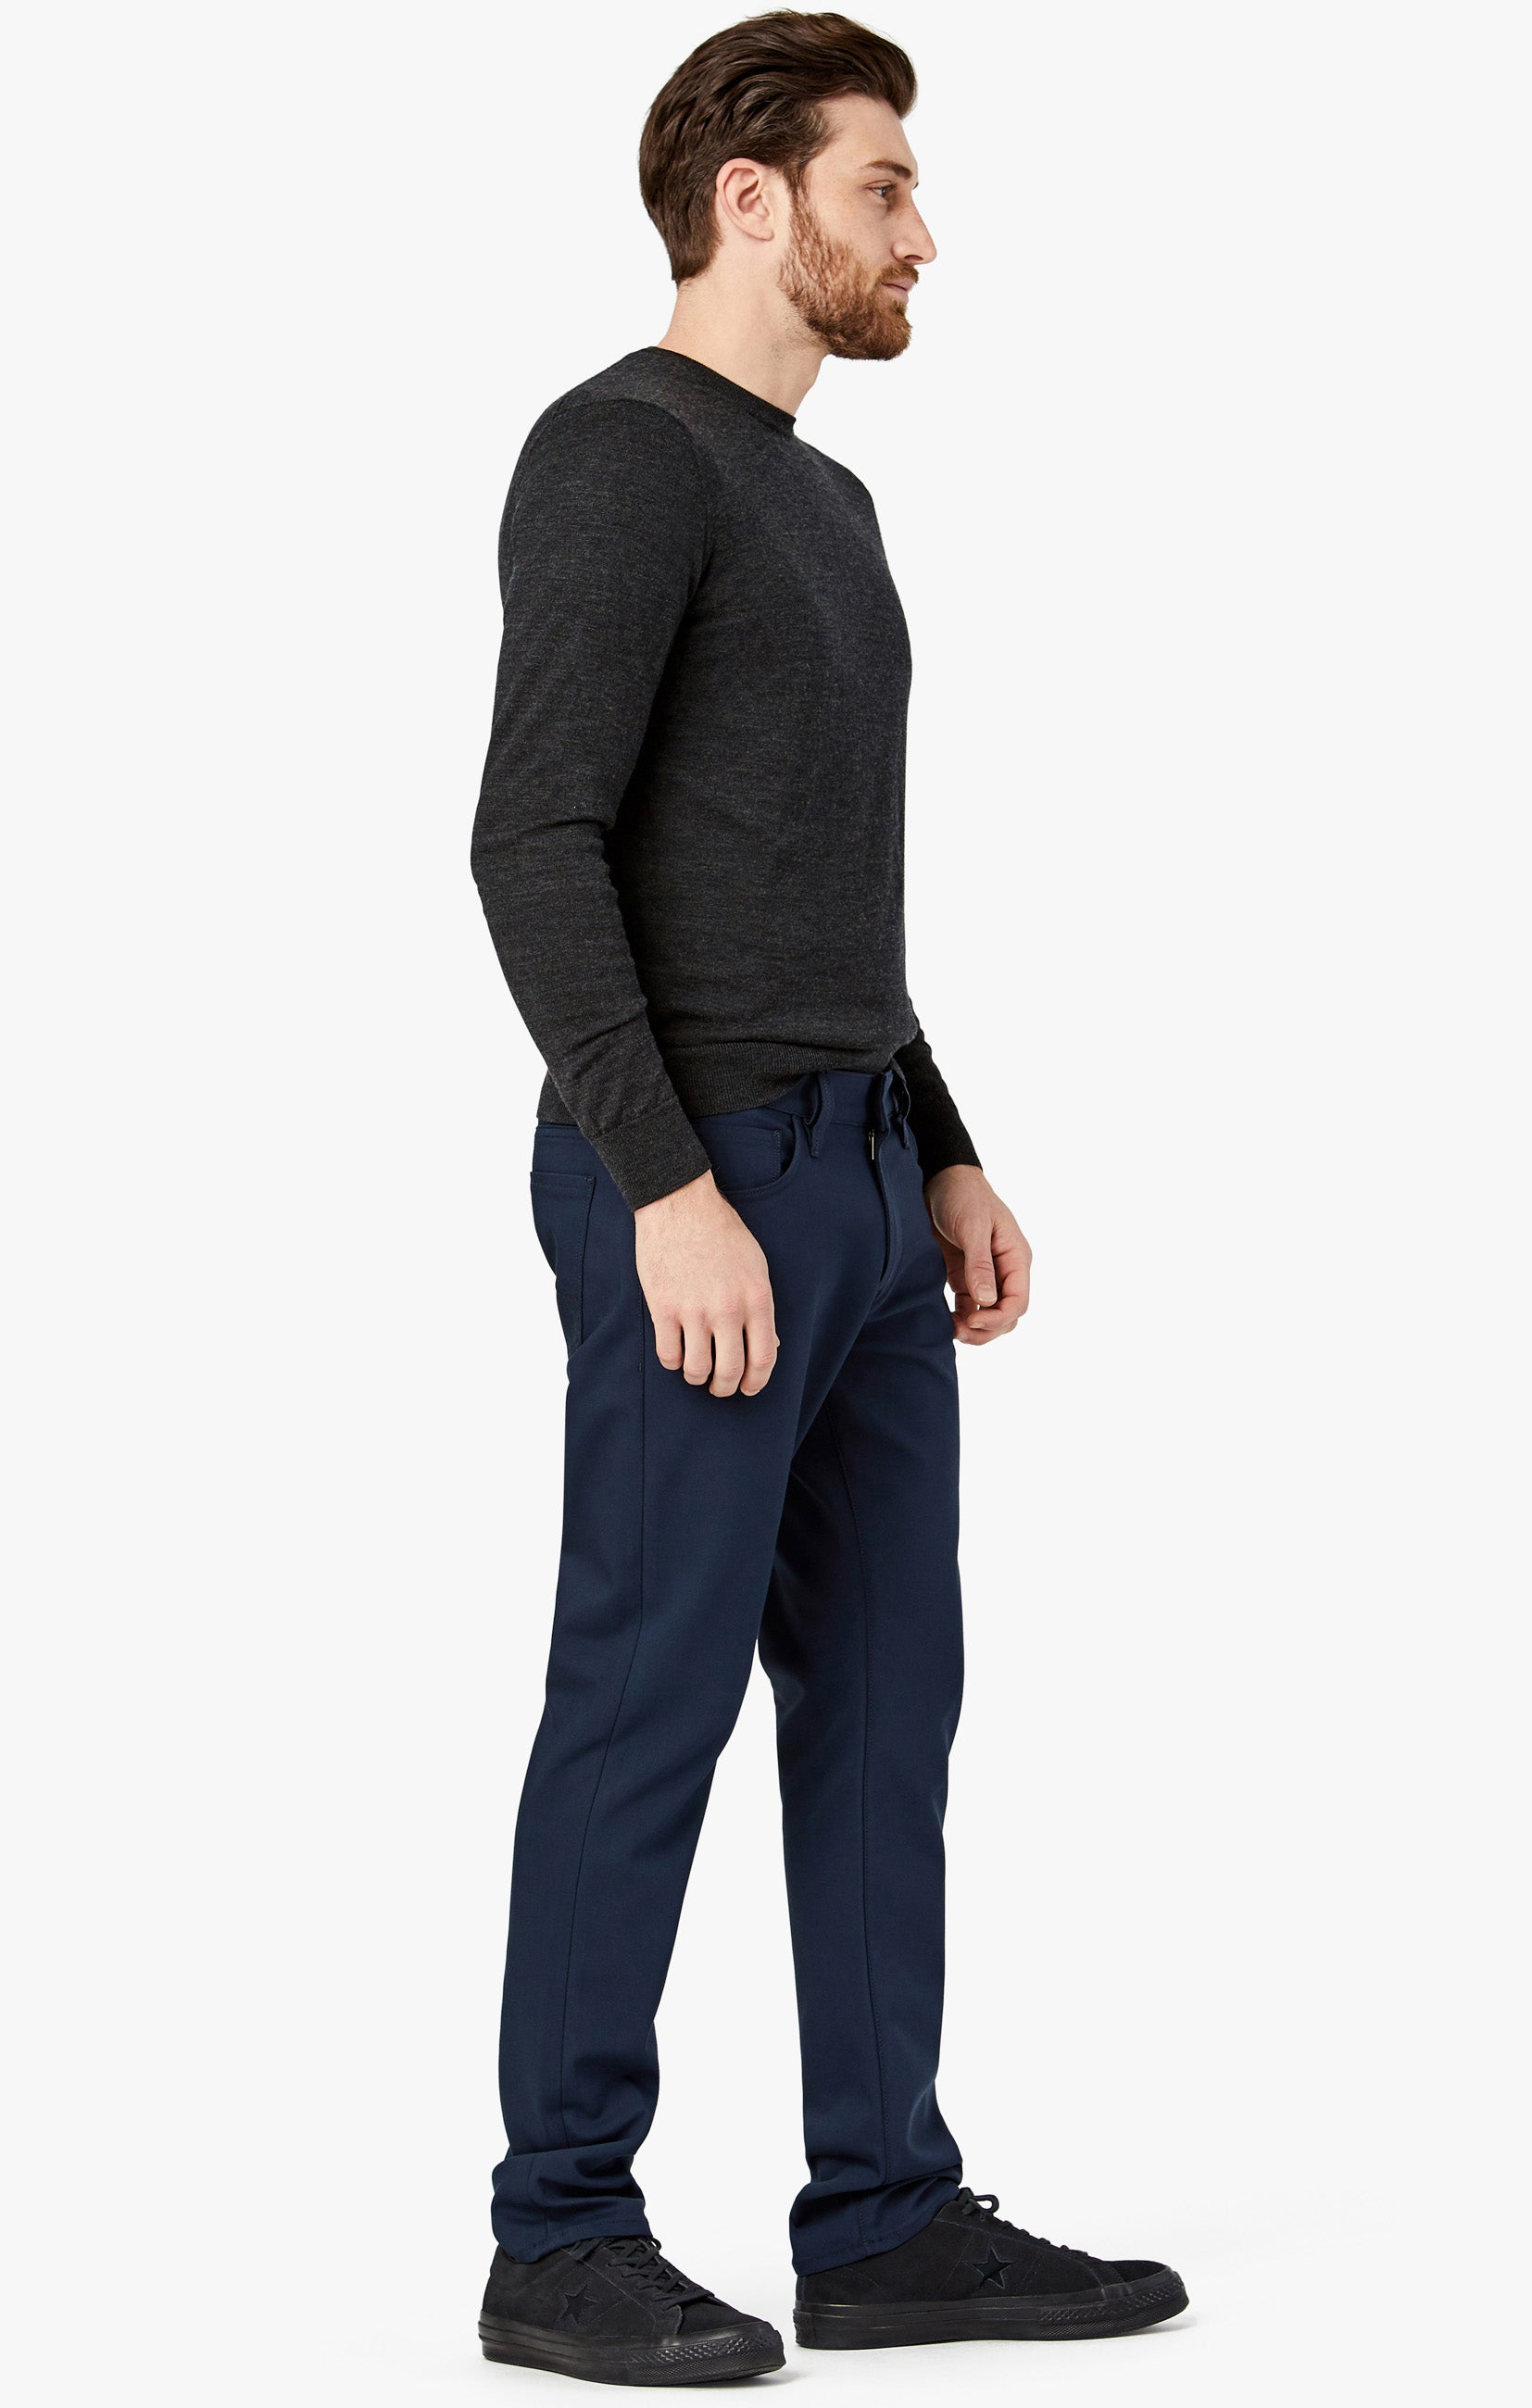 Courage Straight Leg Pants in Navy Commuter Image 3